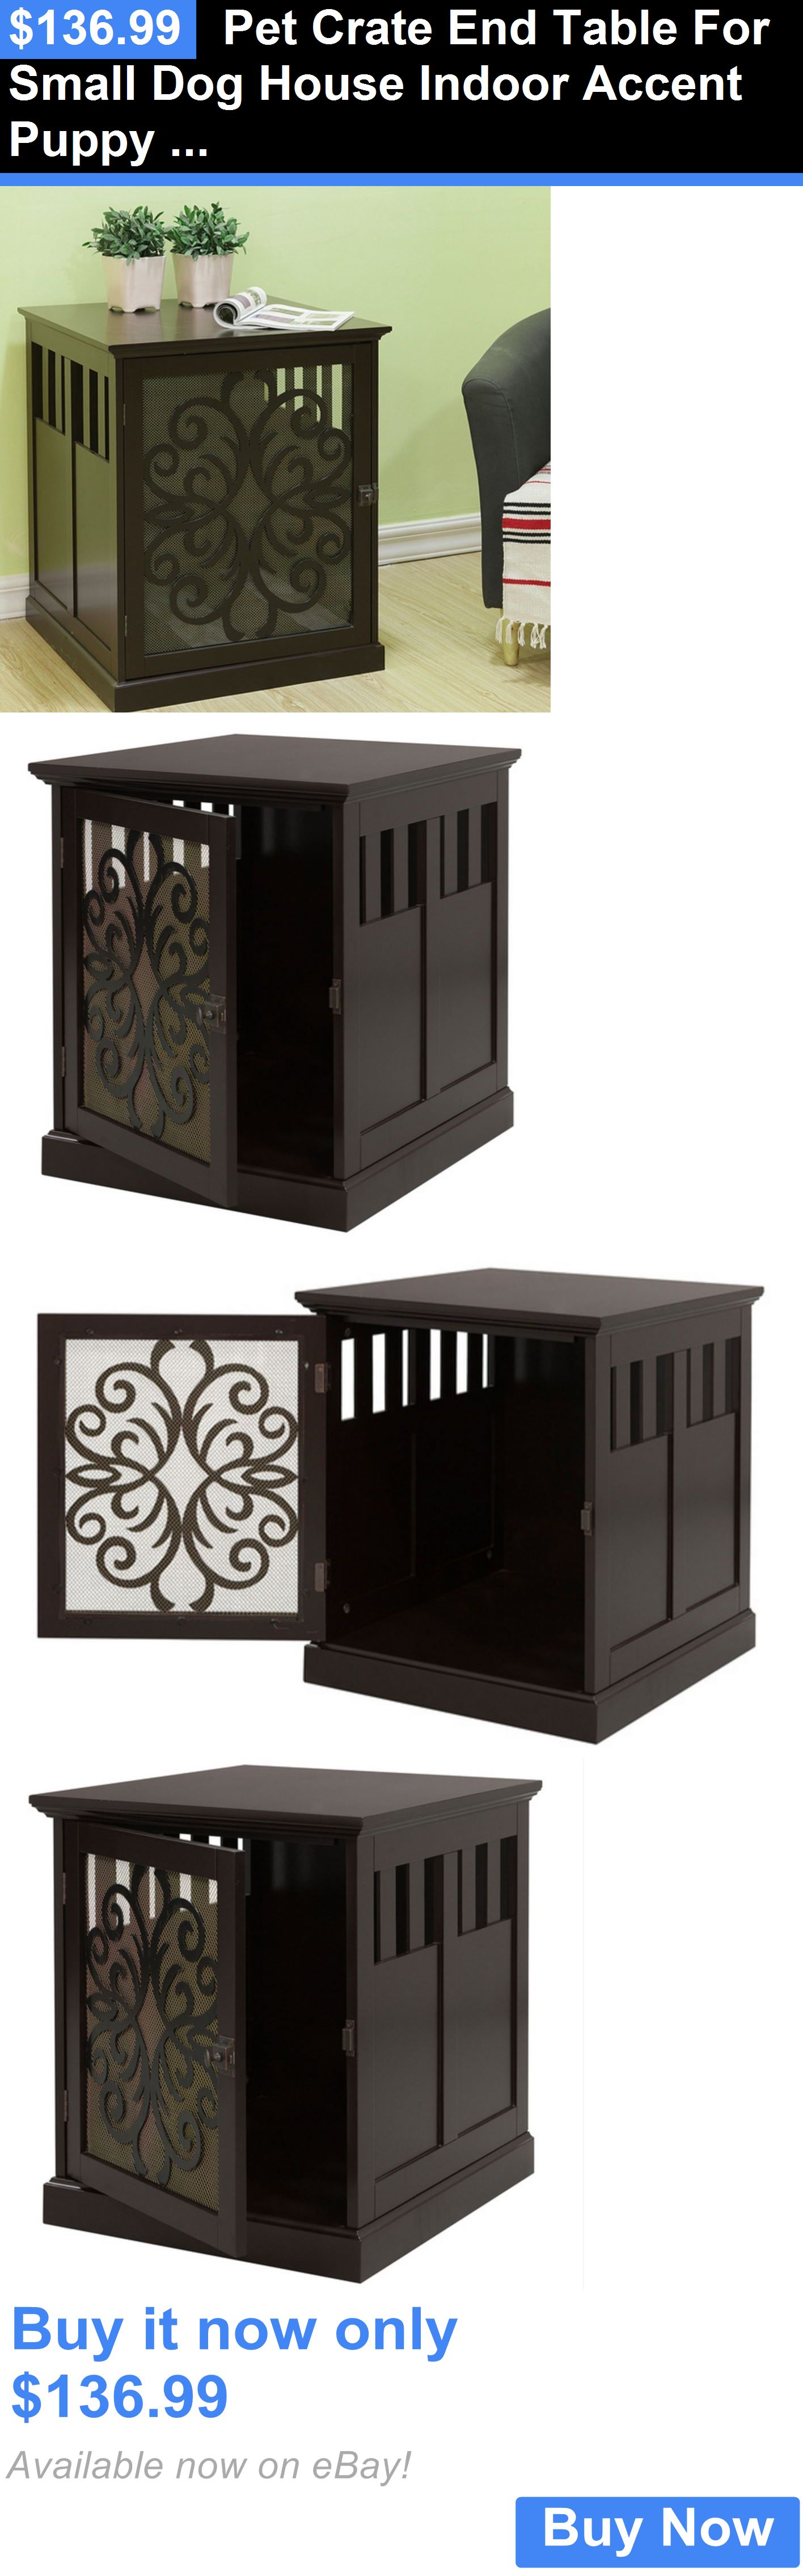 Animals Dog: Pet Crate End Table For Small Dog House Indoor Accent Puppy  Furniture Kennel